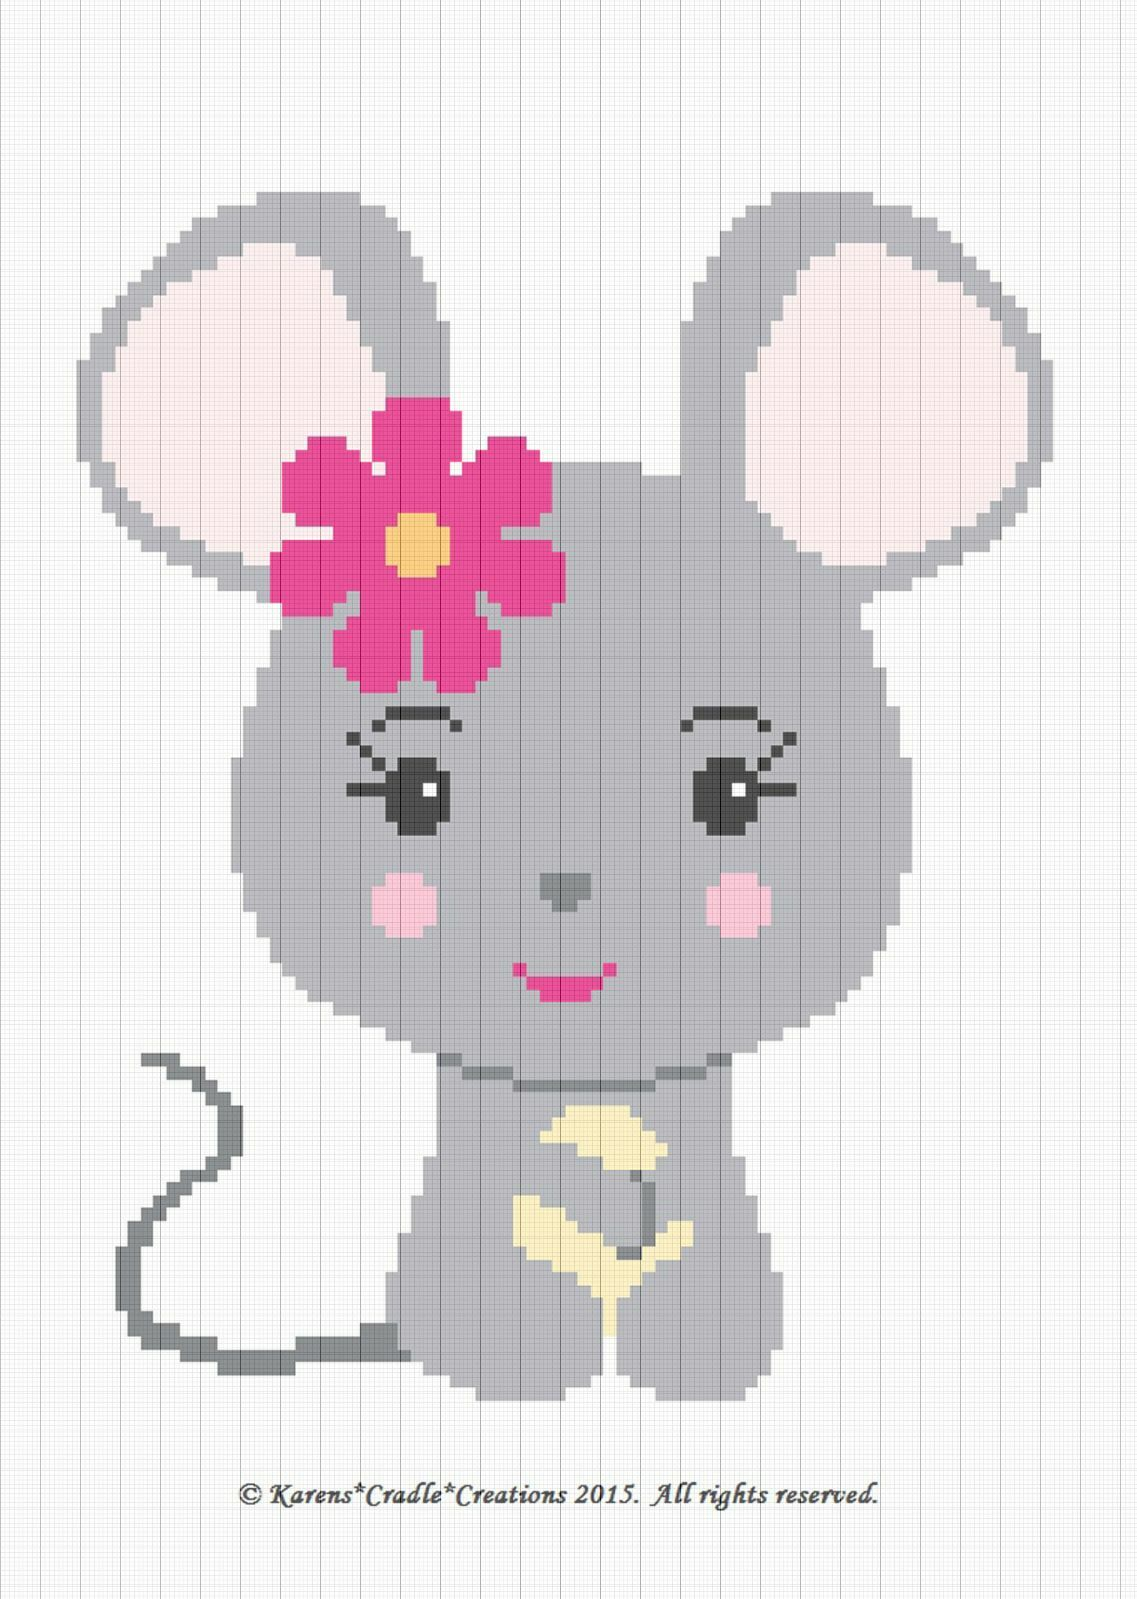 Crochet Patterns Mouse Baby Girl Graph Chart Afghan Pattern Easy 600 Stitch Diagram Diagrams 1 Of See More